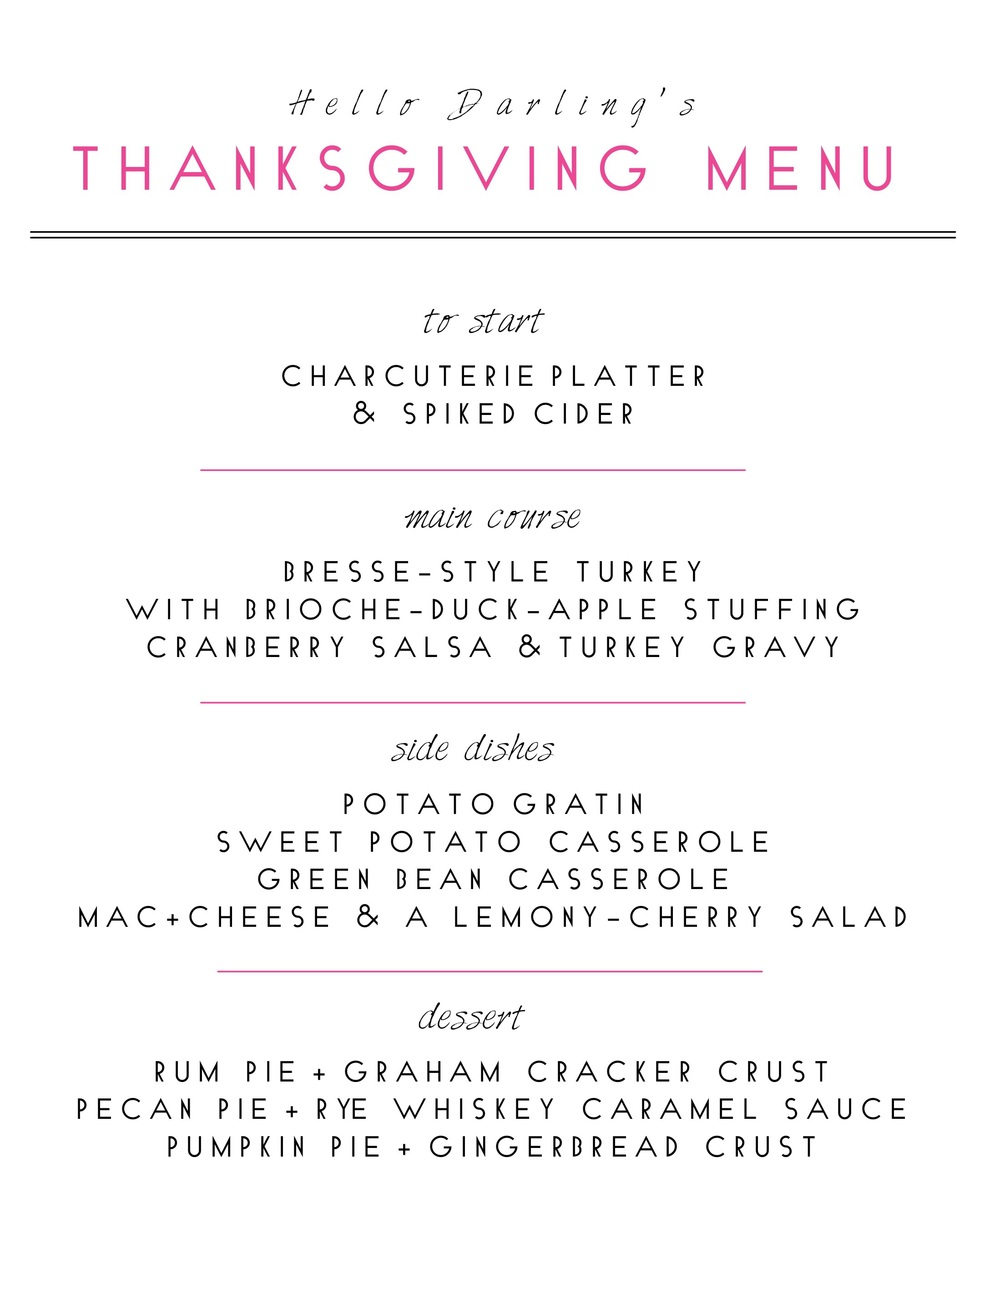 R E C I P E S :  Bresse-Style Turkey  |  Brioche Stuffing  |  Potato Gratin  |  Sweet Potato Casserole  |  Green Bean Casserole  |  Lemony-Cherry Salad  |  Rum Pie  |  Pecan Pie  |  Pumpkin Pie  .